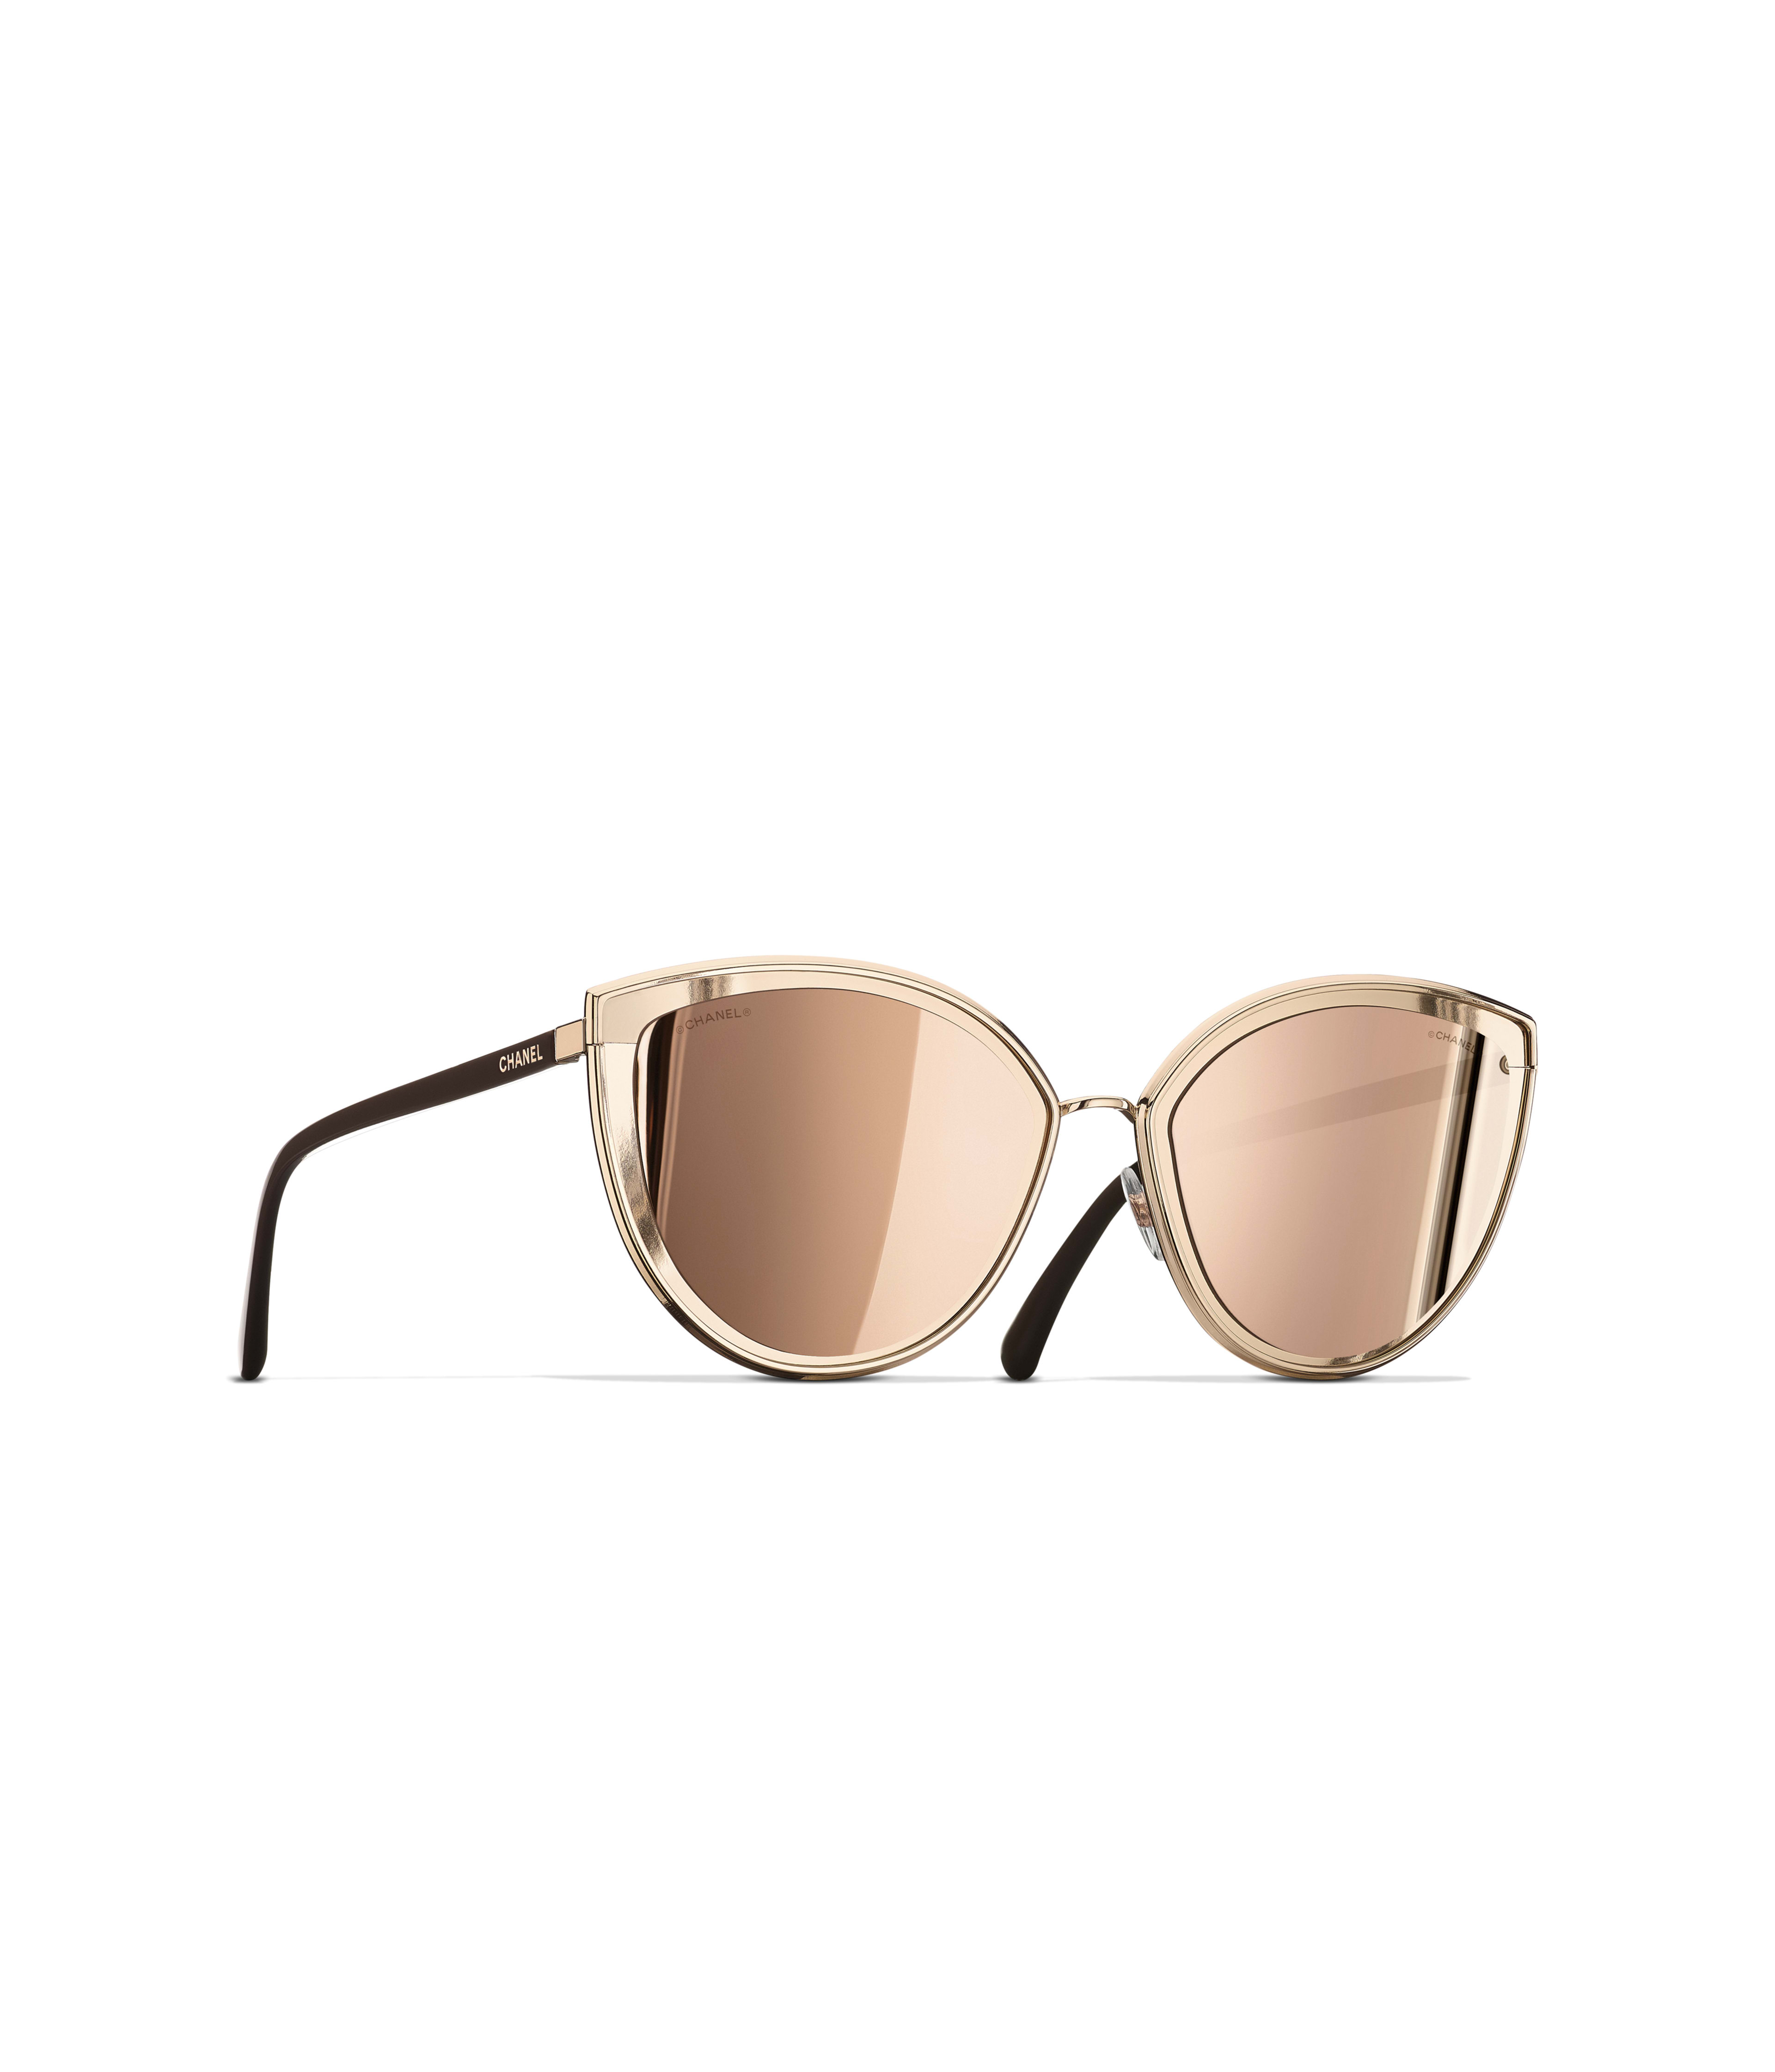 e563d5526590 Chanel Sunglasses Cat Eye - The Best Picture Glasses In 2018